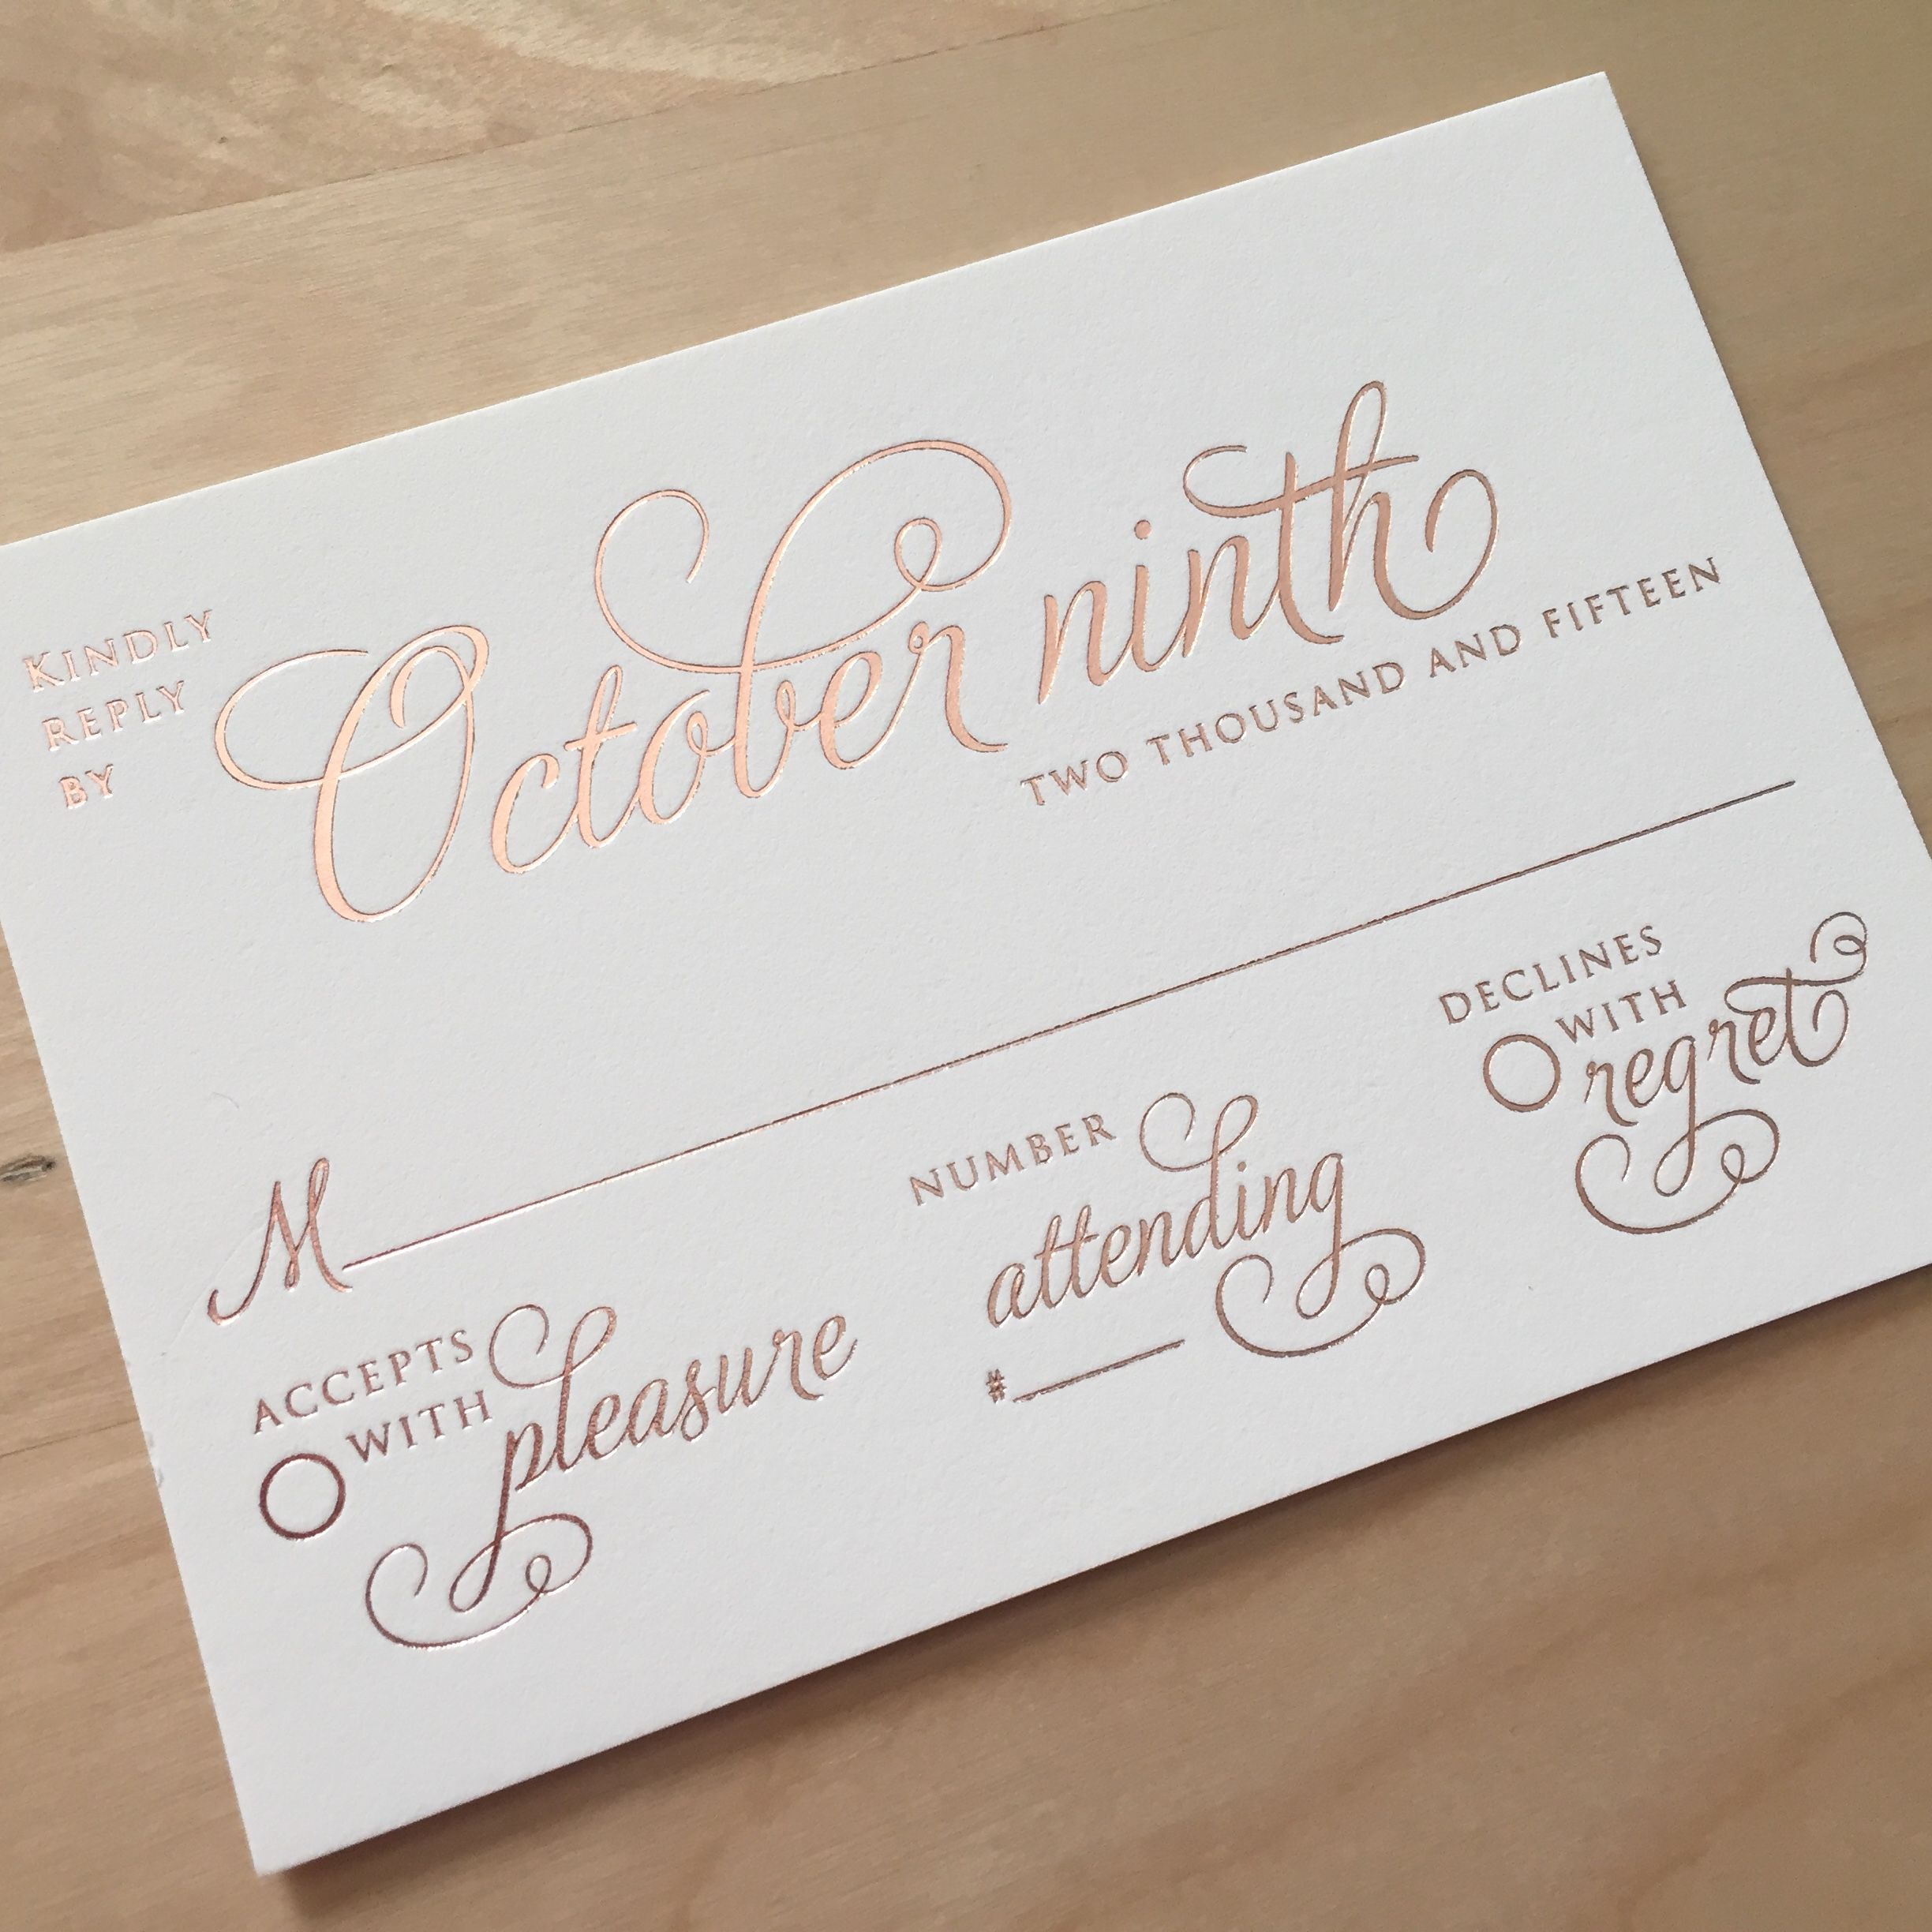 Wedding Invitation Response Cards: RSVP Response Card Wording